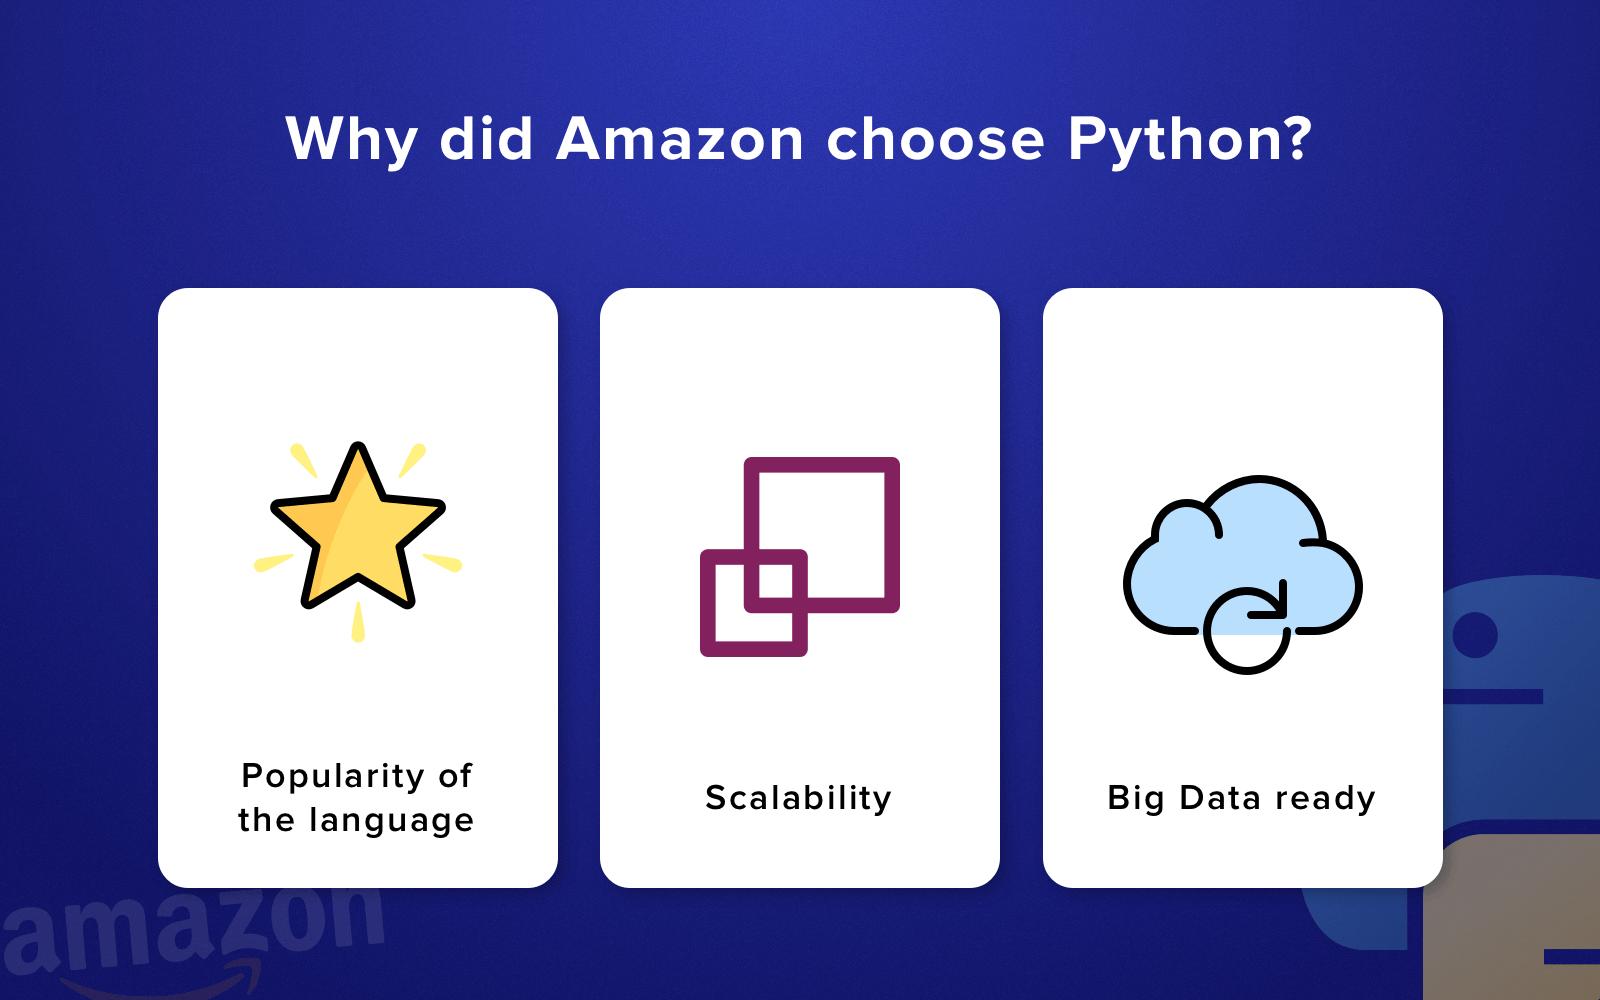 Advantages of Python: Why did Amazon choose it